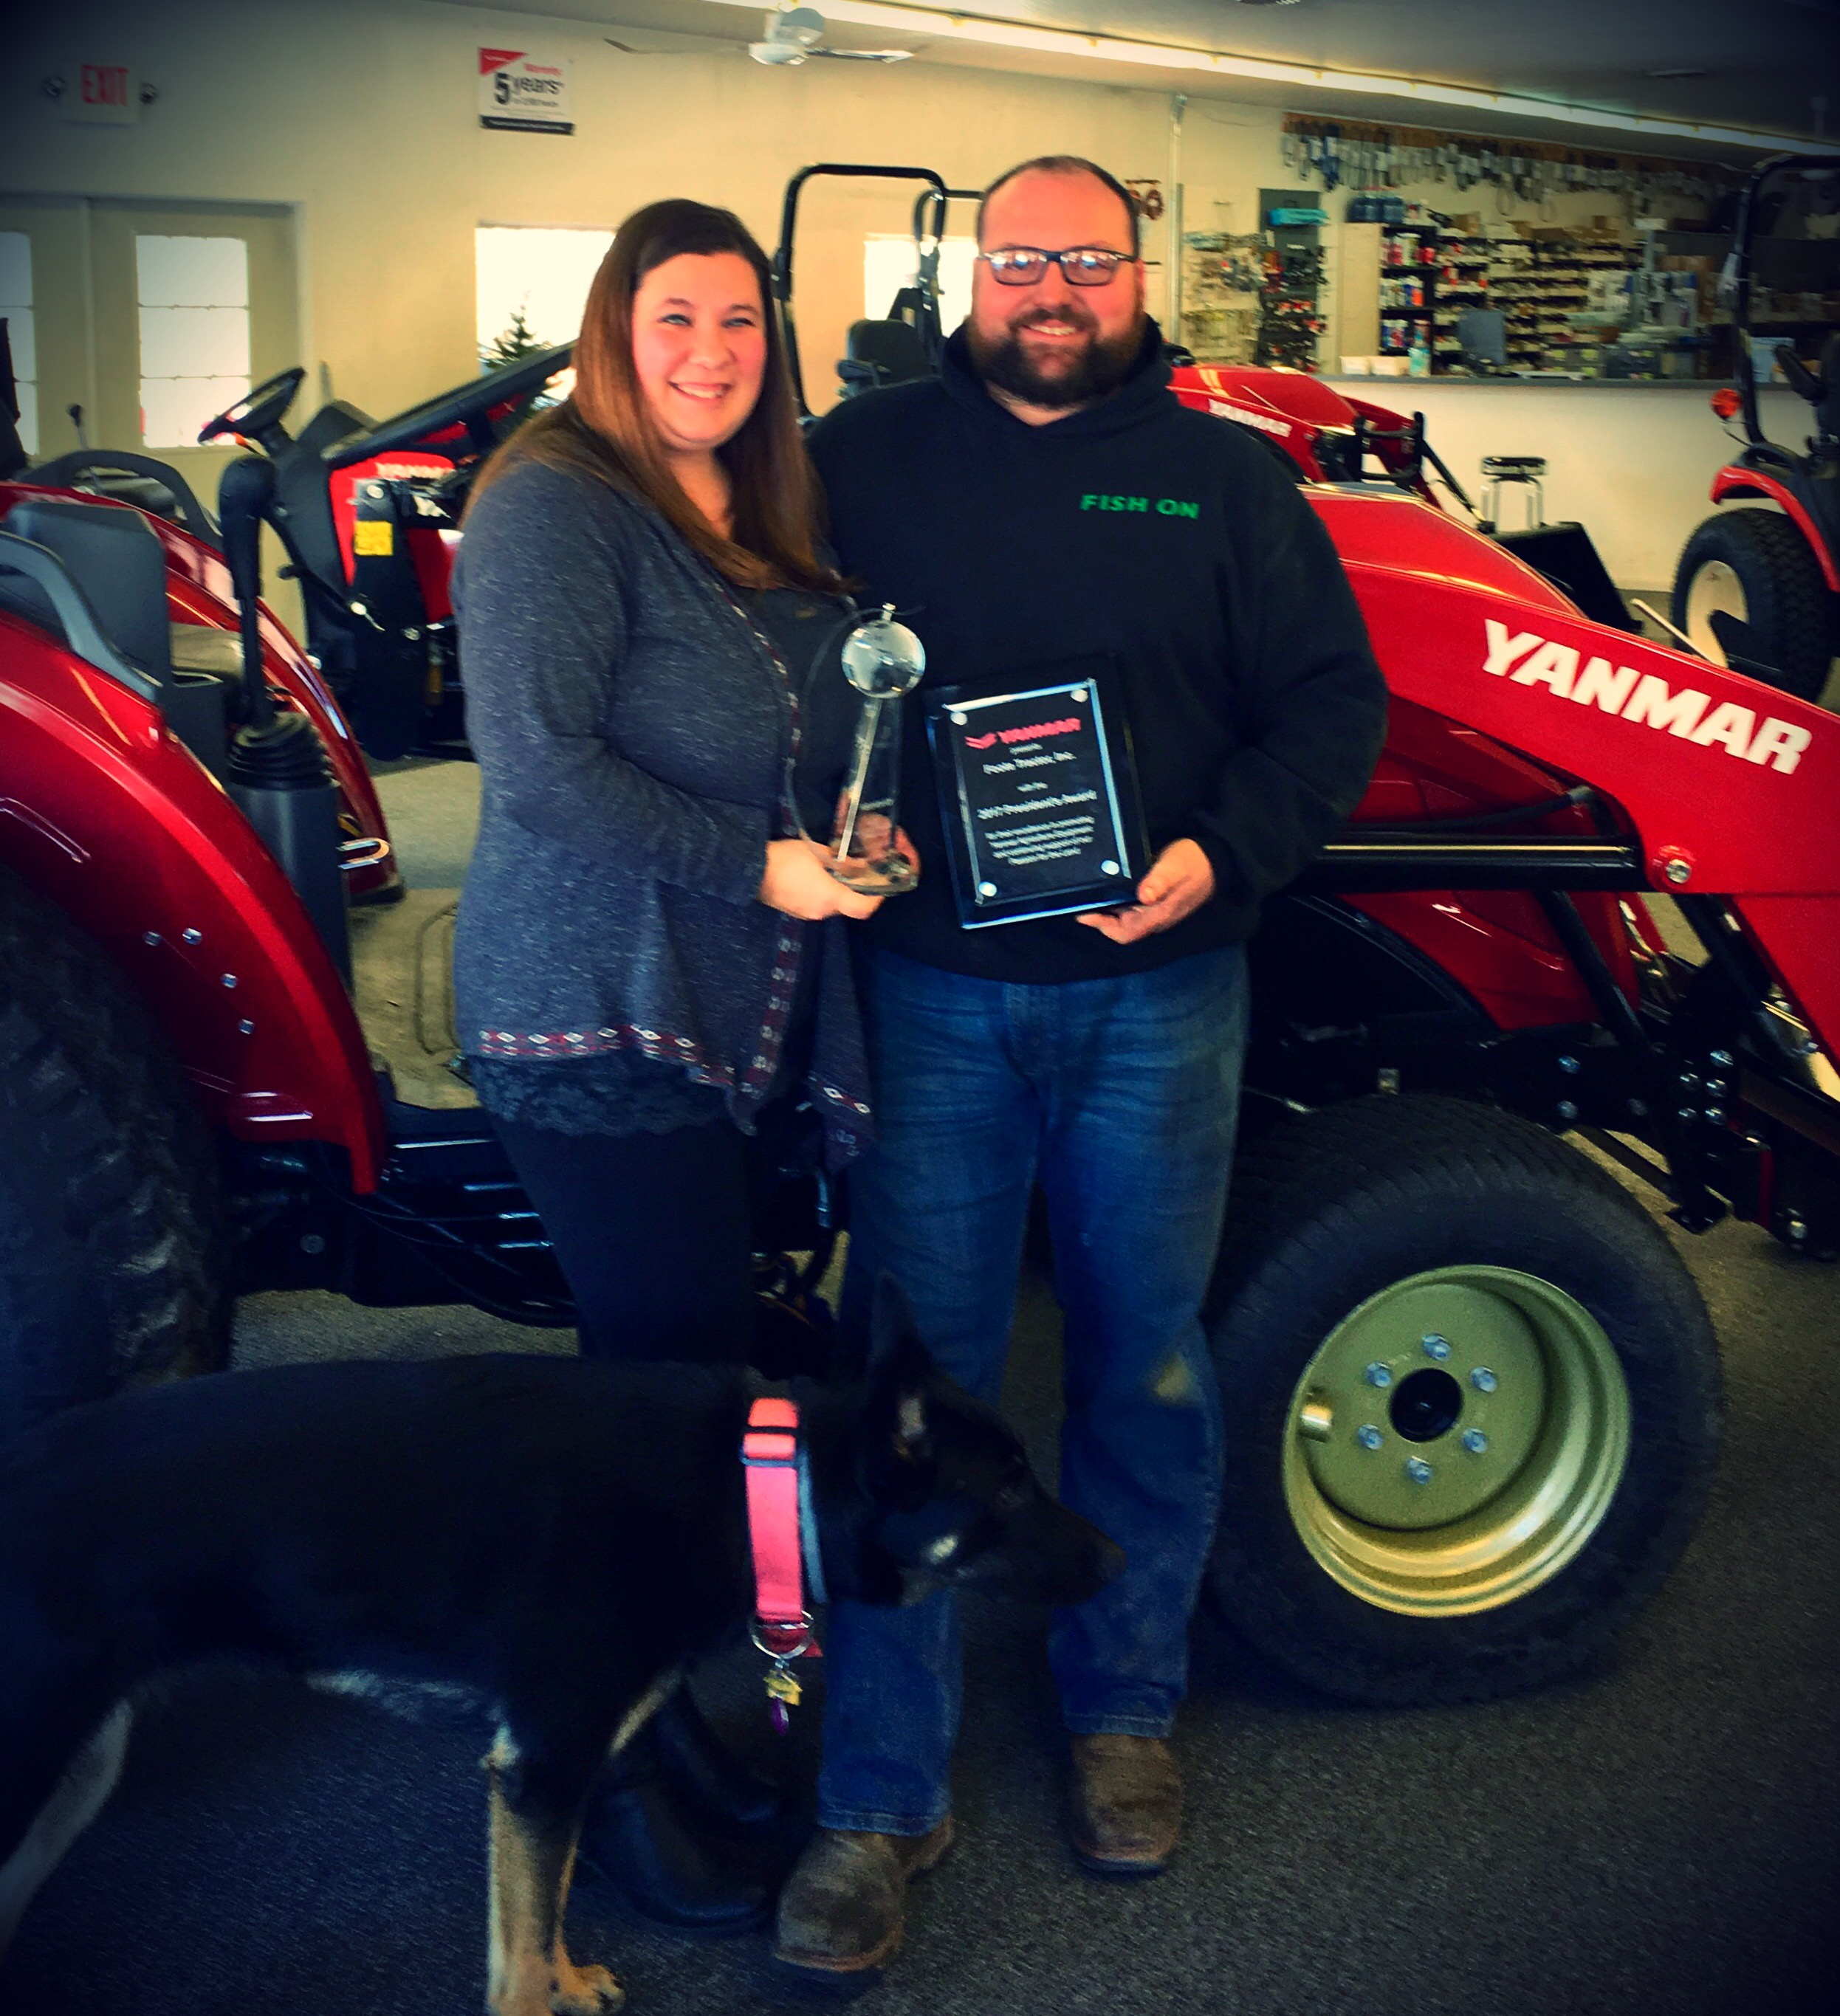 Tom and Tiffany with the Yanmar Dealer of the Year and President's Awards